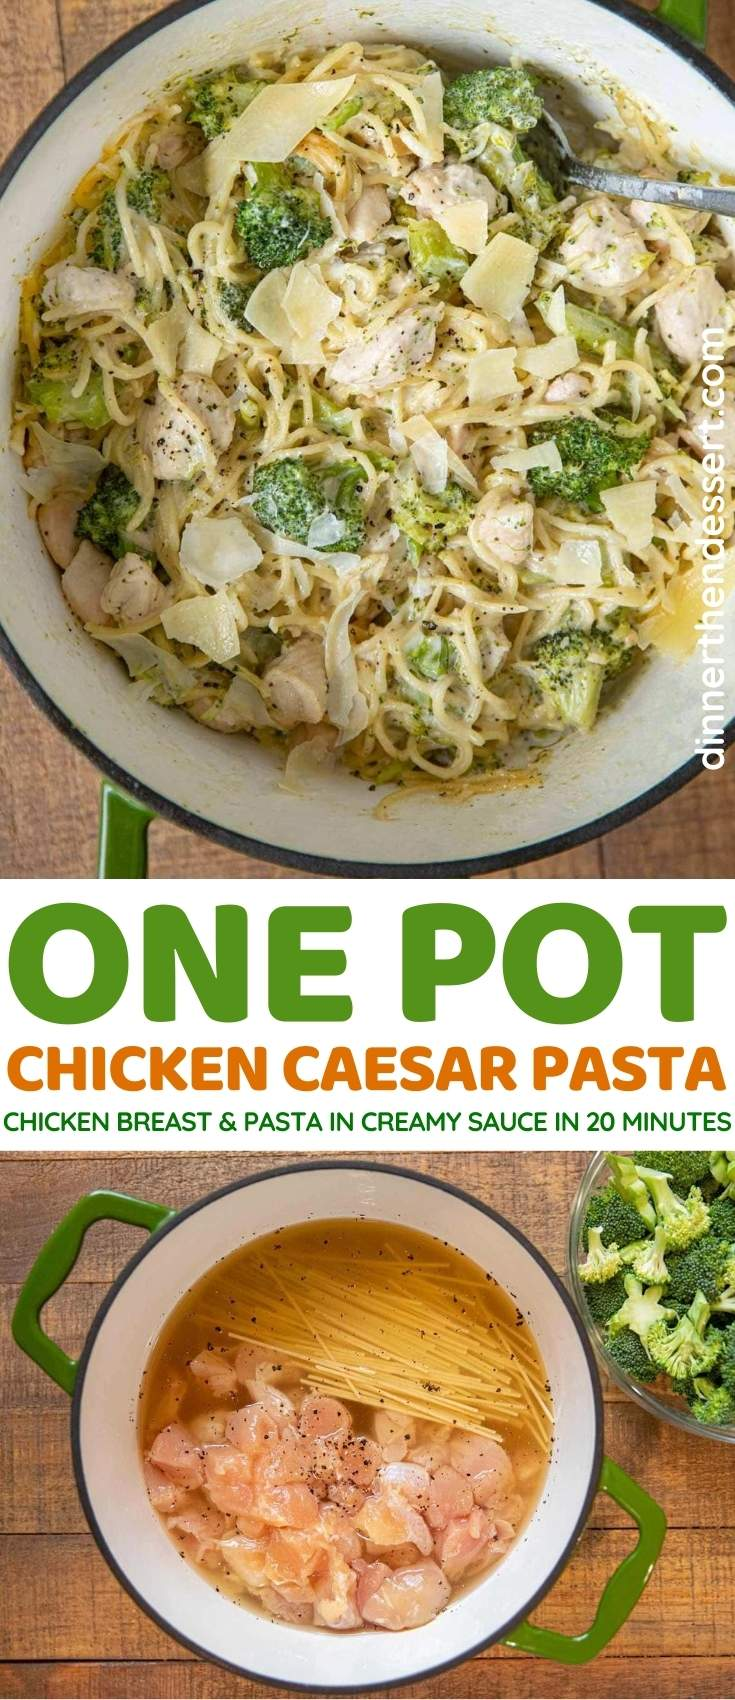 One Pot Chicken Caesar Pasta collage